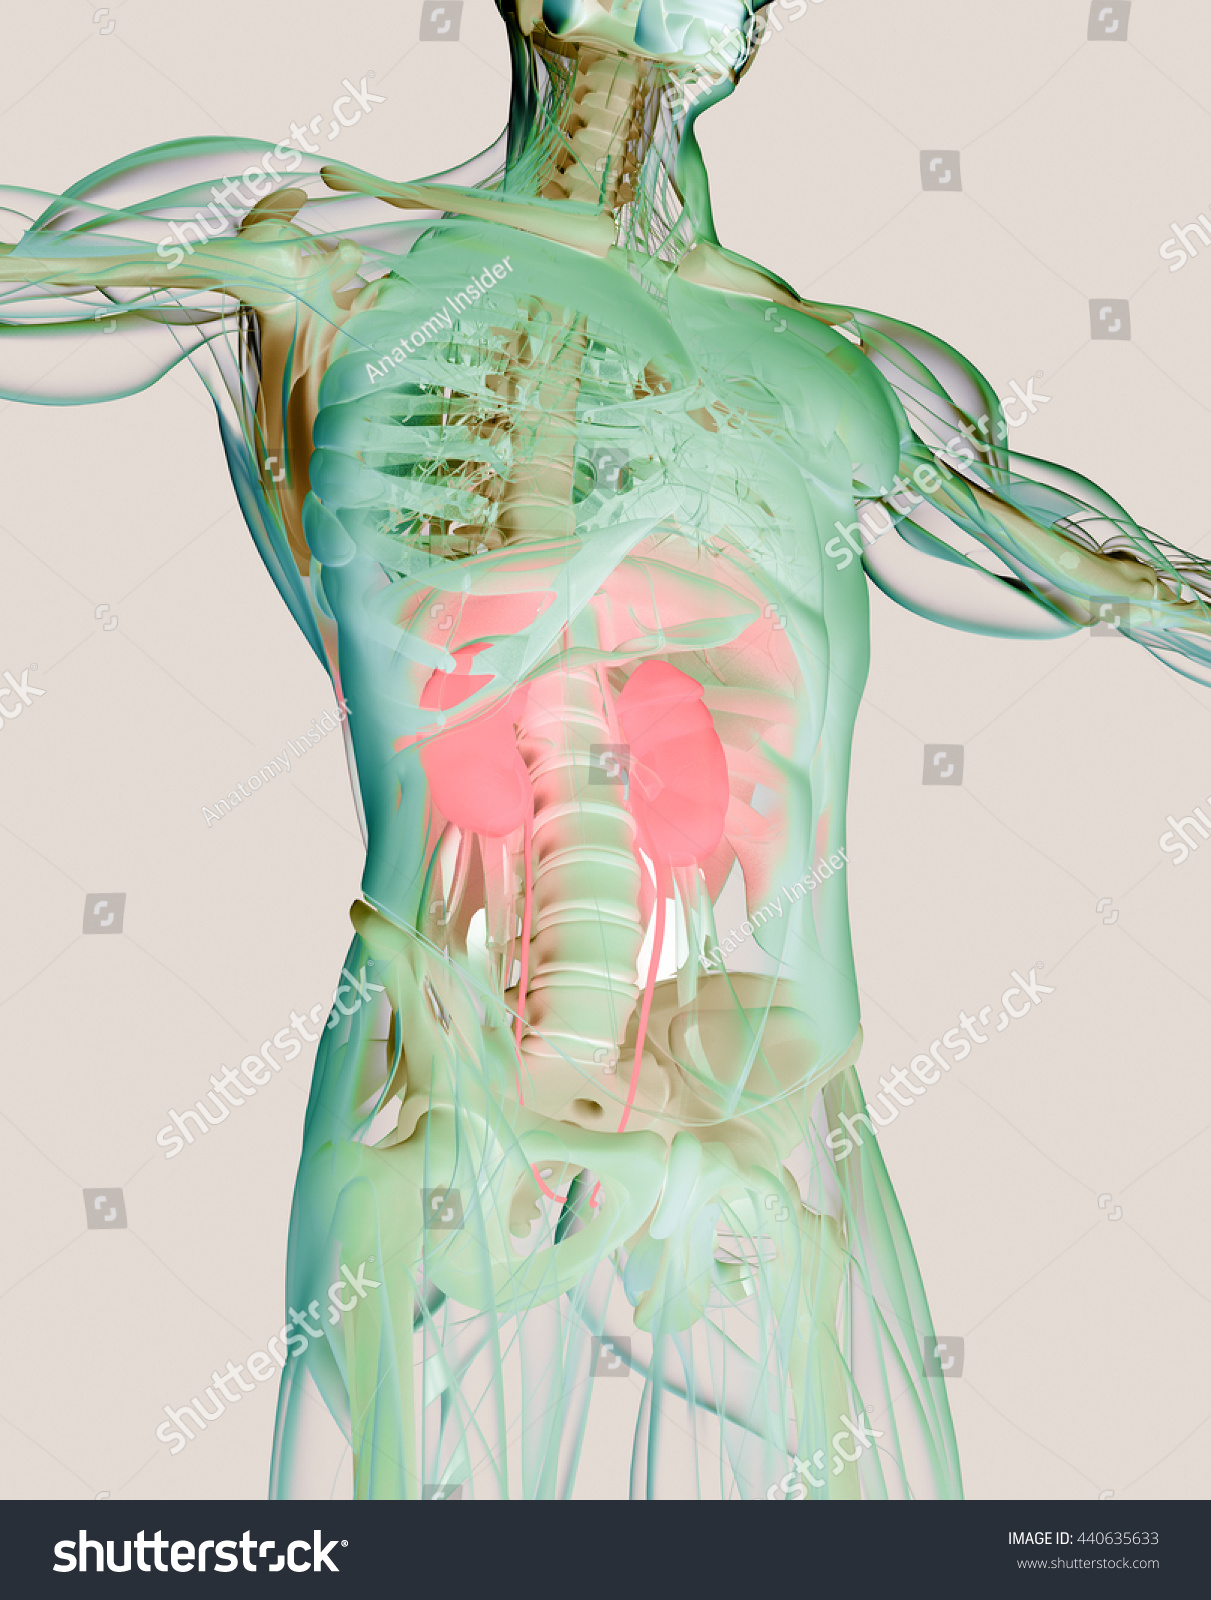 Kidneys Human Anatomy Xraylike View Futuristic Stock Illustration